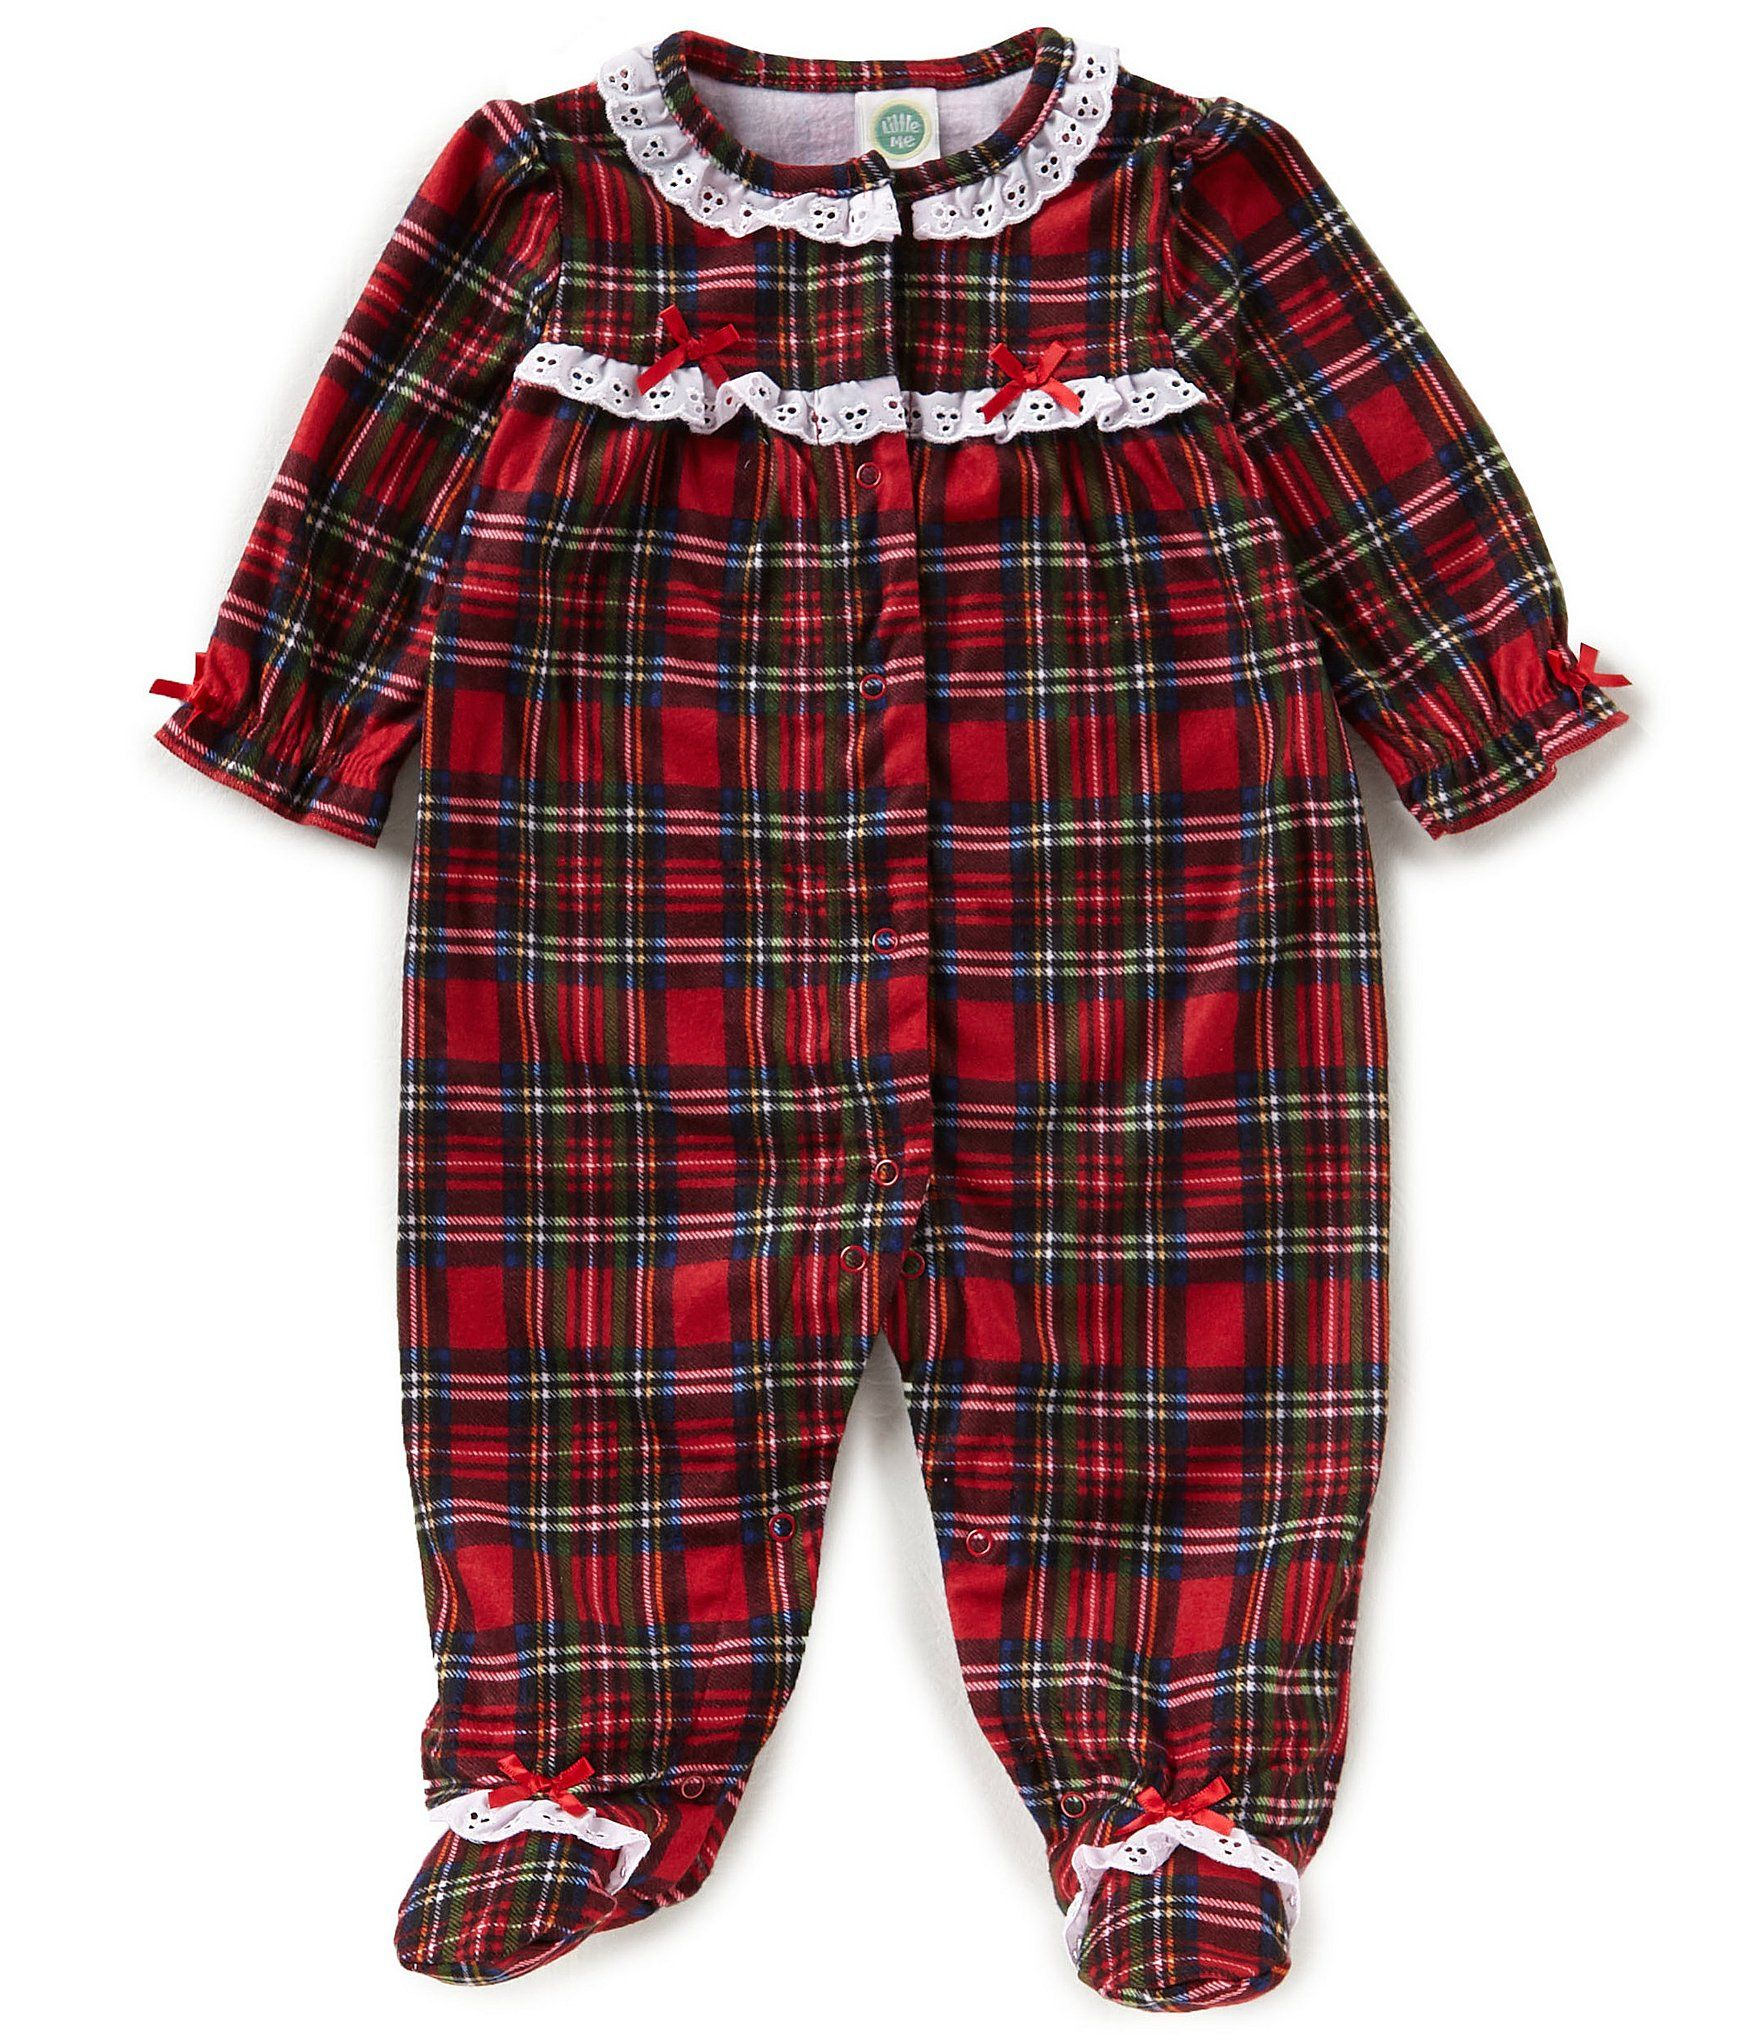 bf4e2b5900c Little Me Baby Girls 3-12 Months Christmas Plaid Footed Pajamas ...